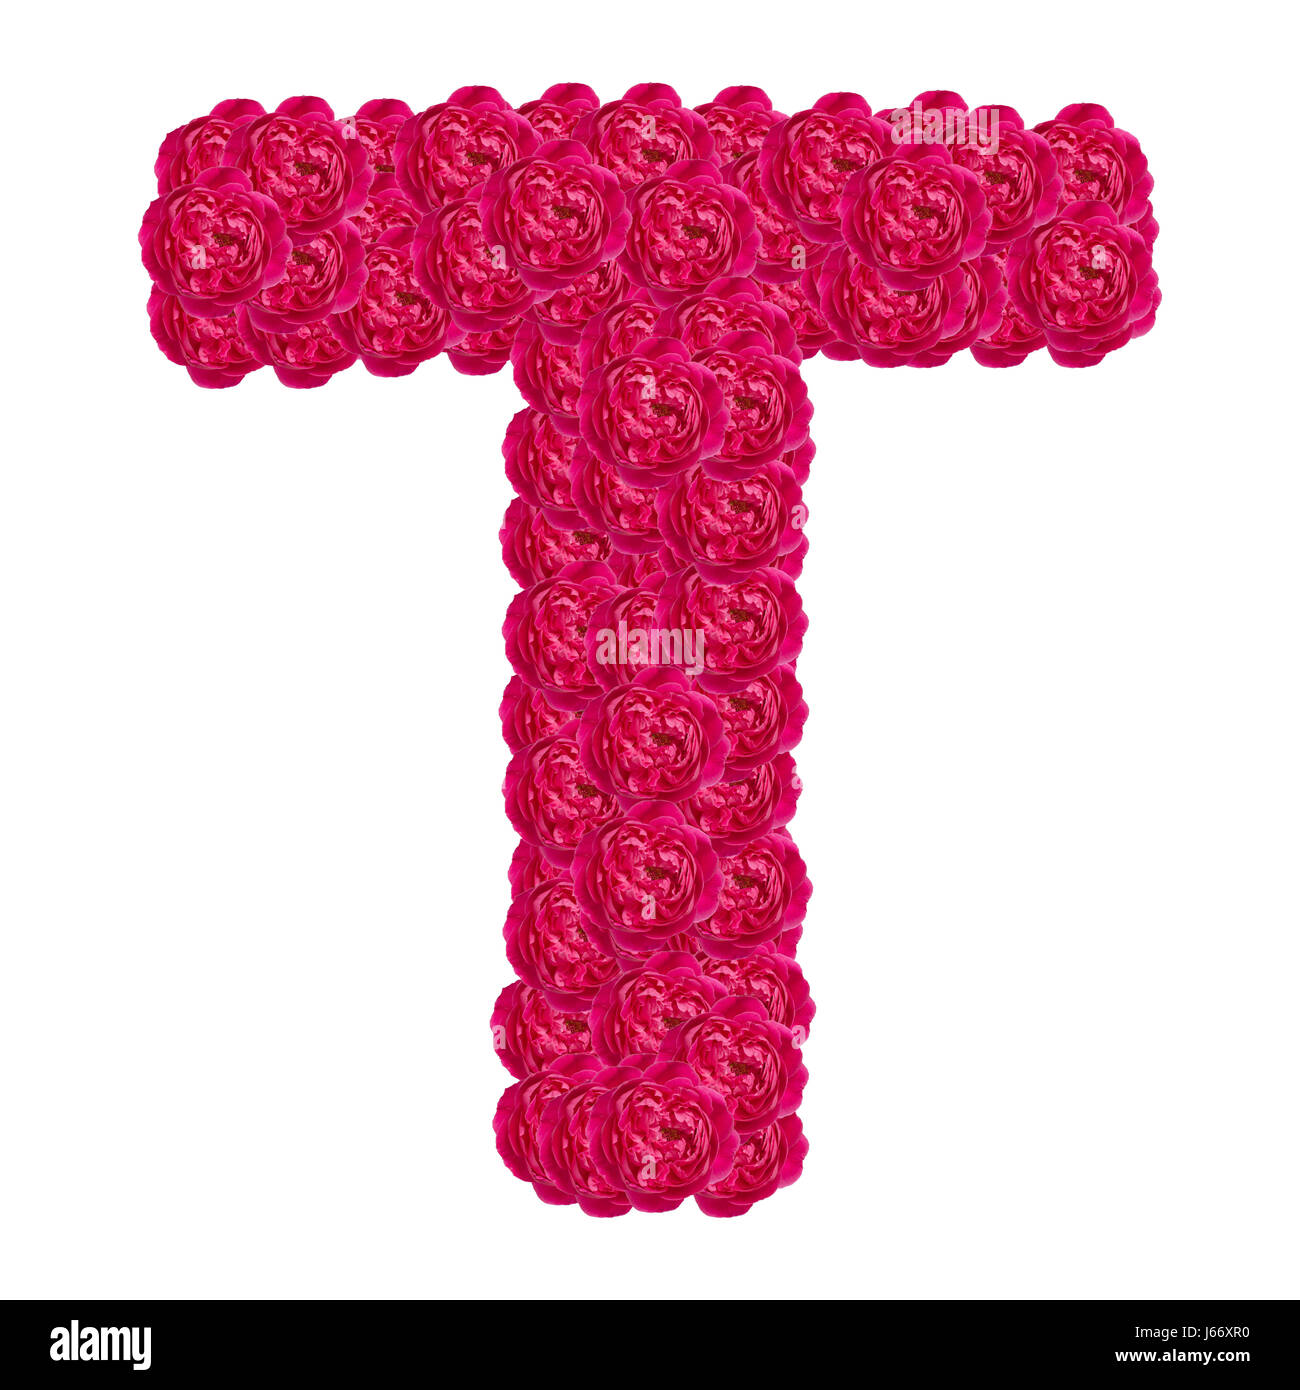 Letter T Alphabet With Damask Rose Abc Concept Type As